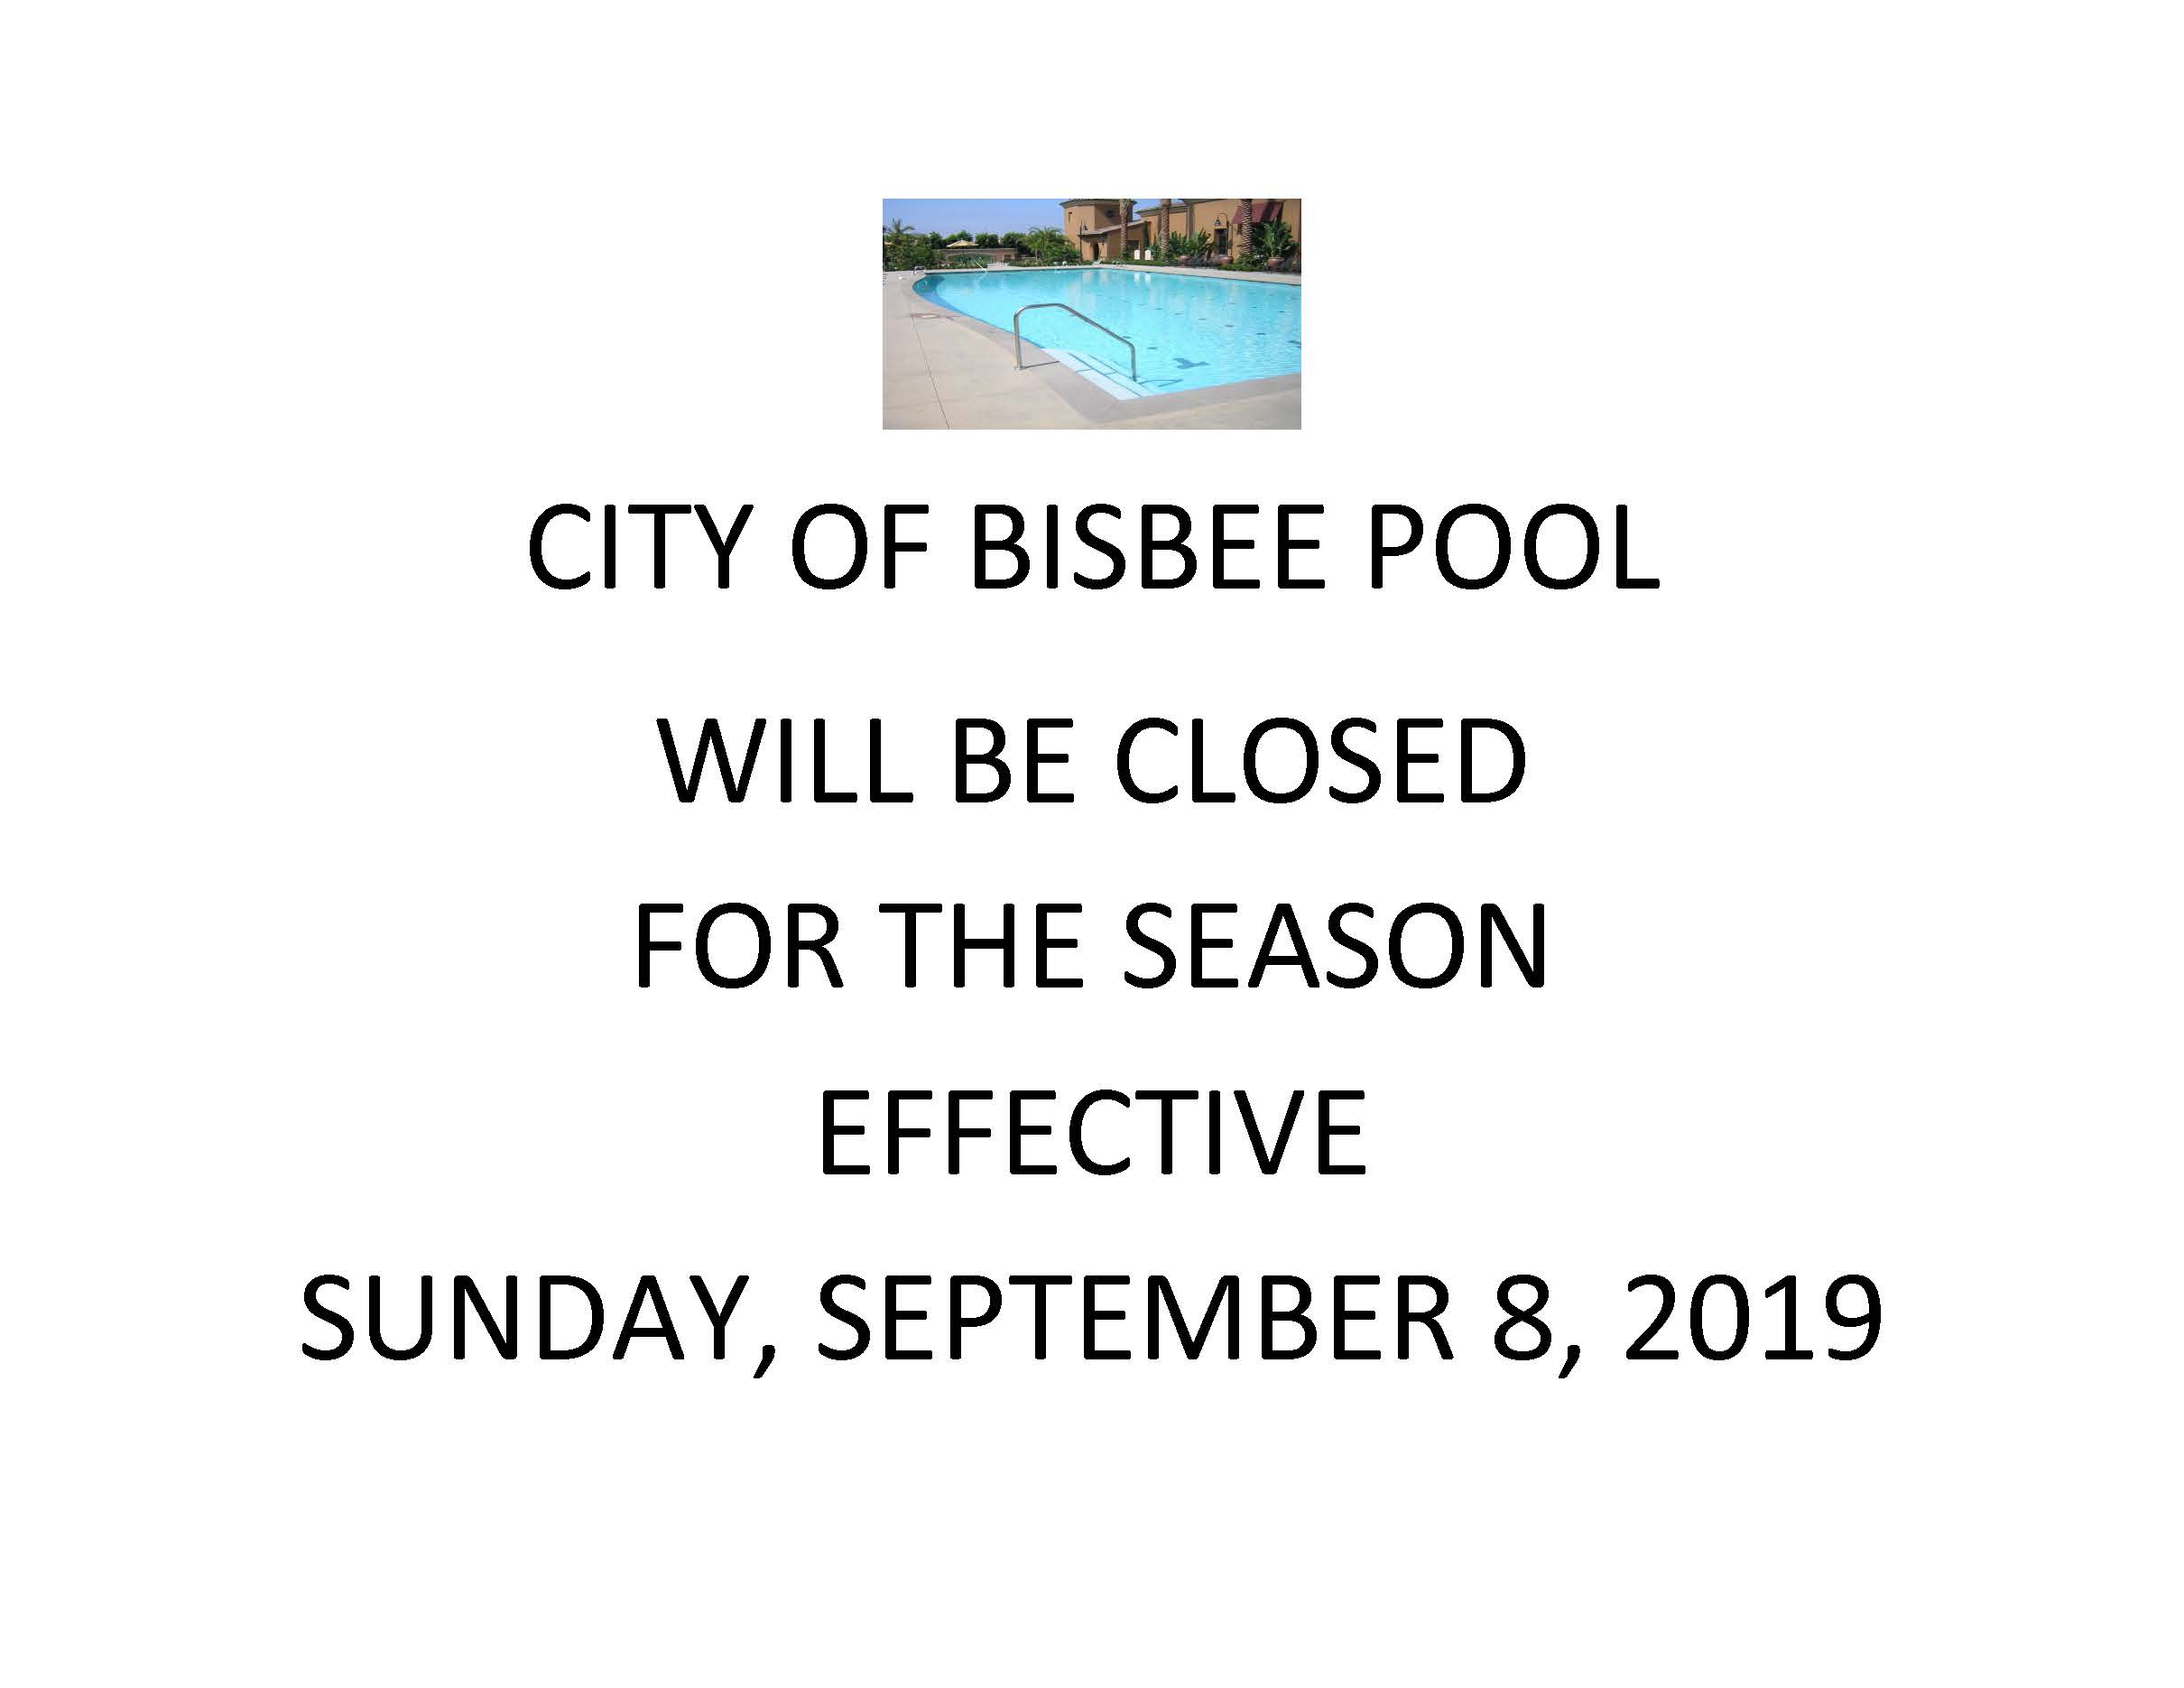 CITY OF BISBEE POOL-CLOSED FOR THE SEASON SIGN-2019